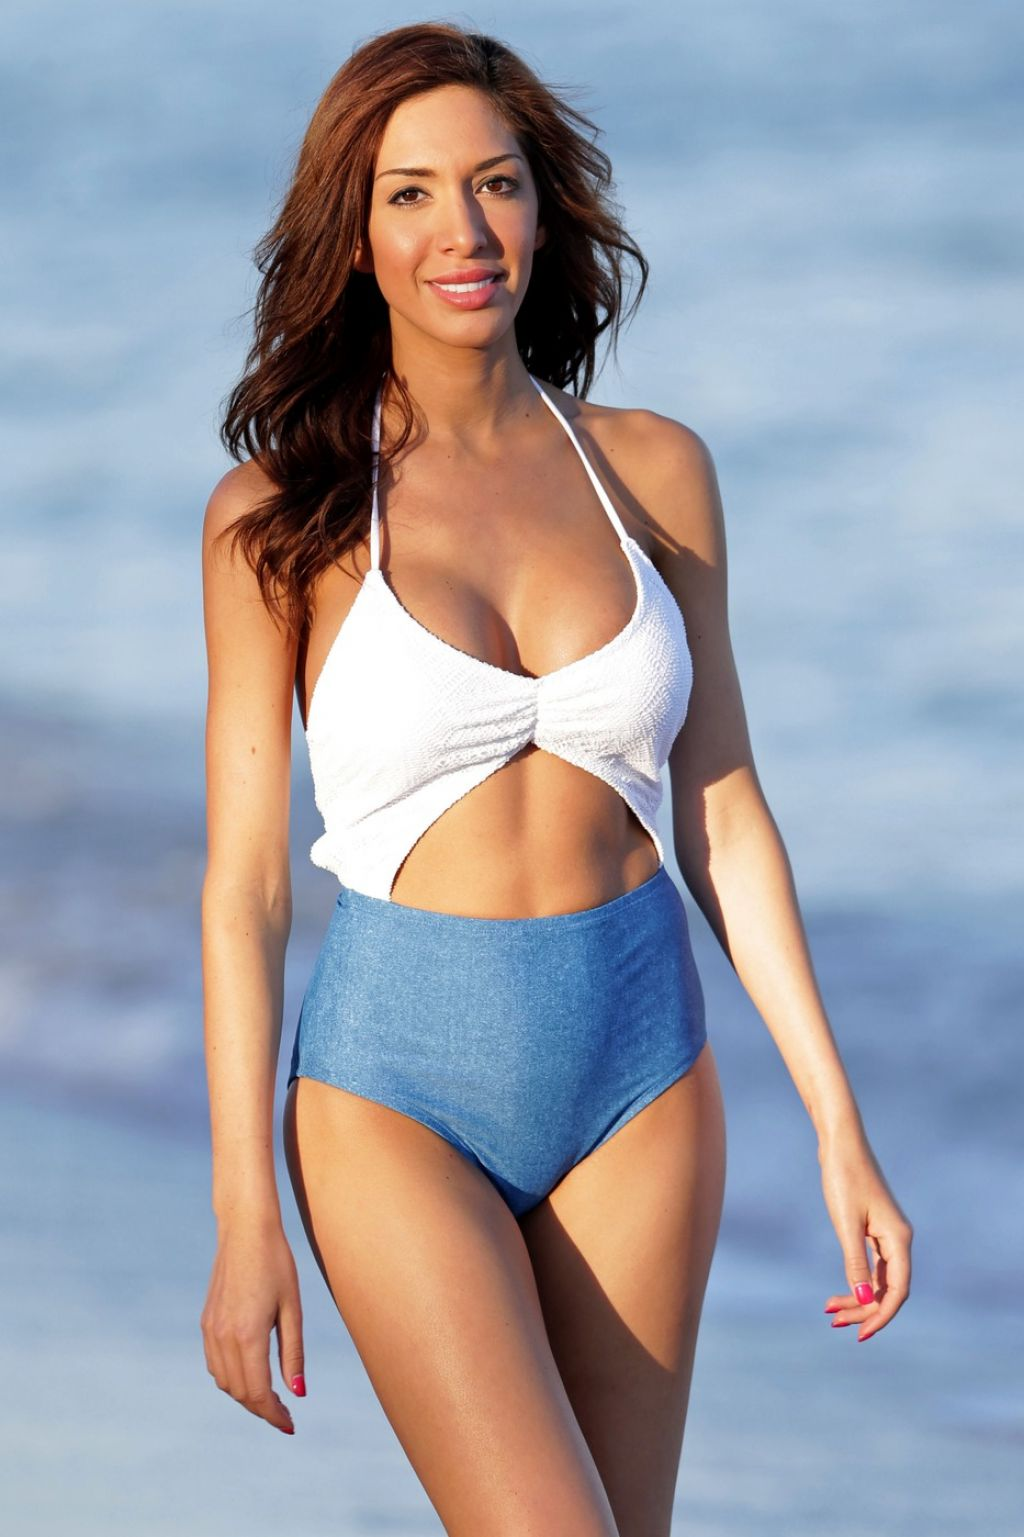 Farrah Abraham In a Swimsuit - Throwing A Football Around At The Beach In Miami, January 2014